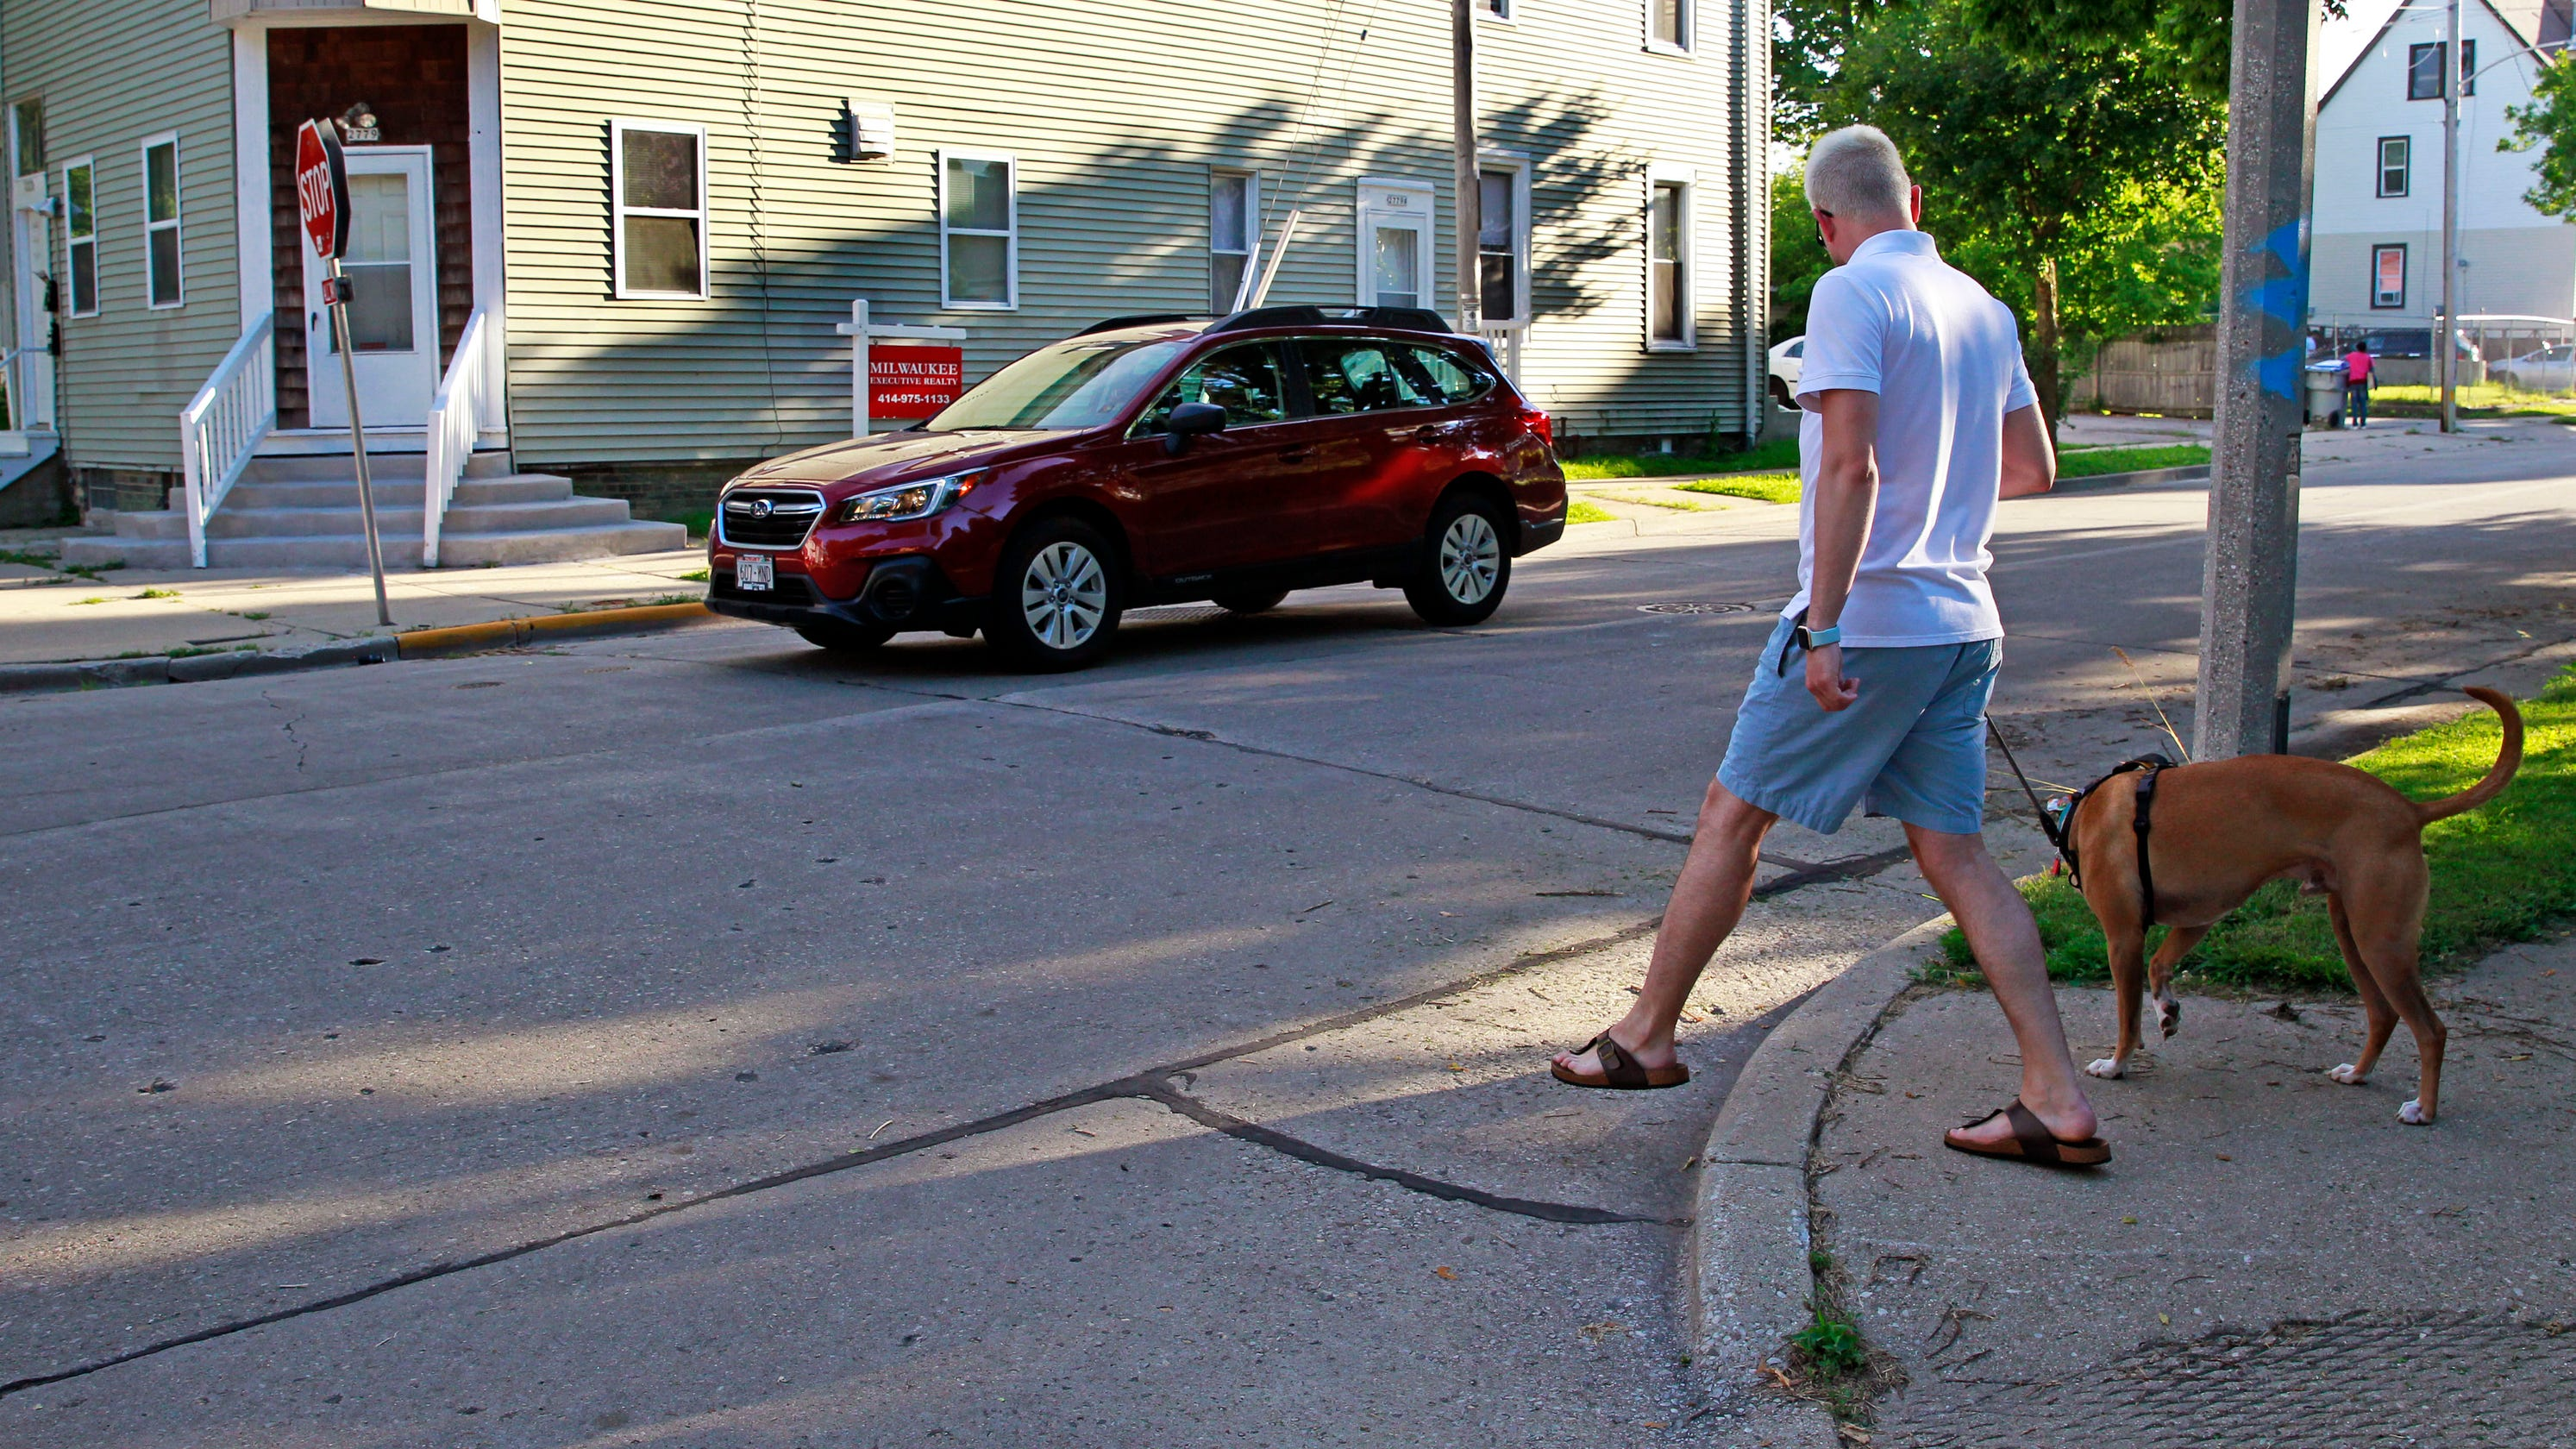 Milwaukee residents are fed up with reckless drivers, want